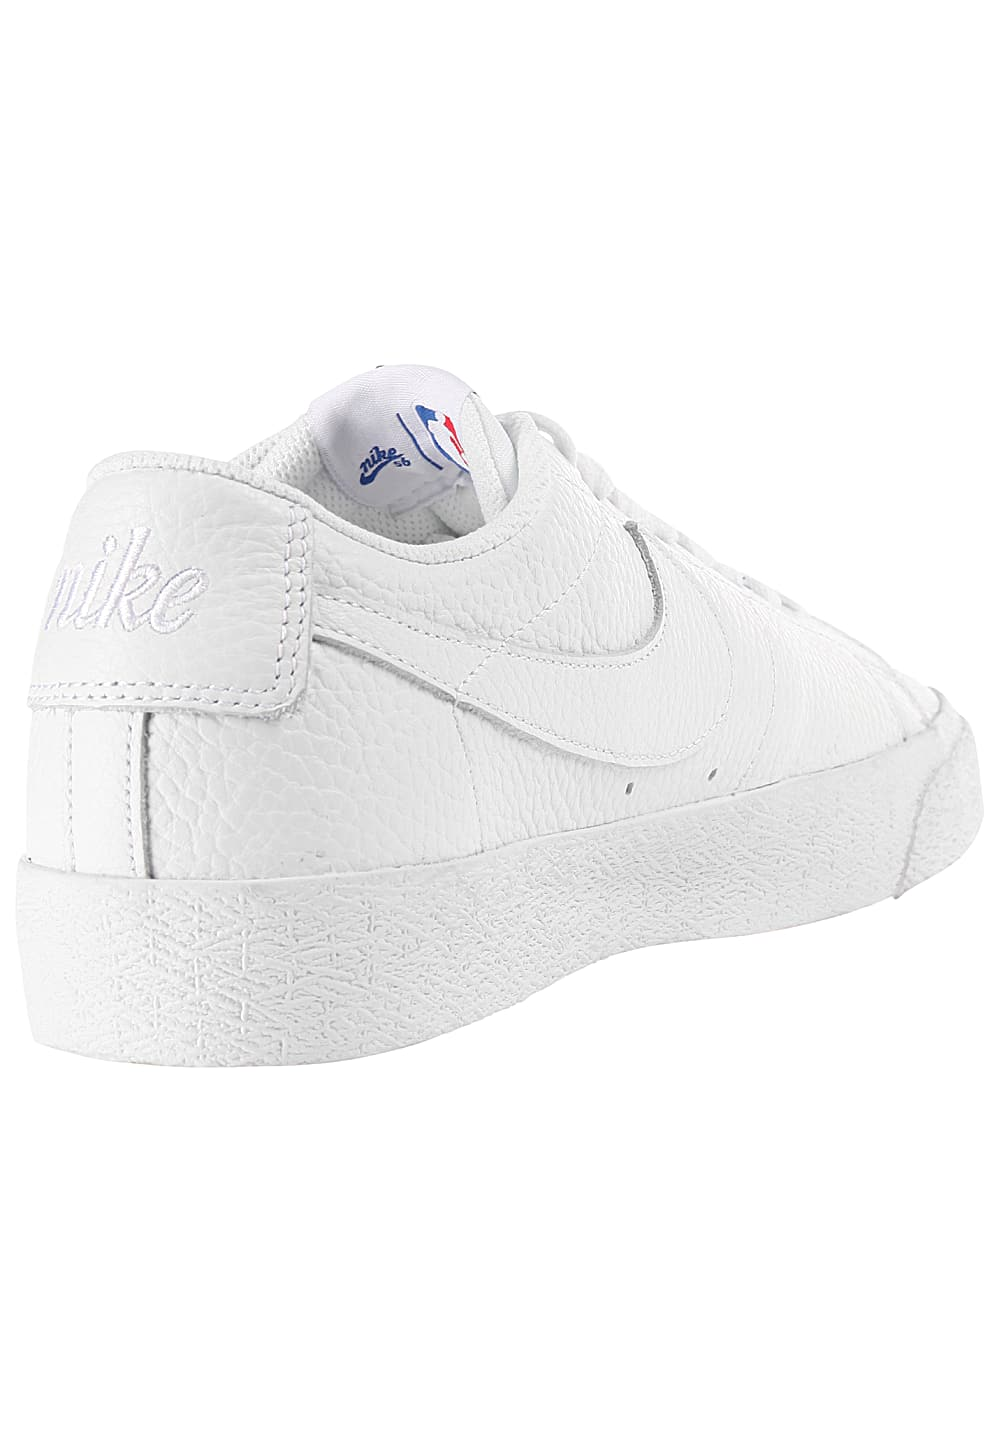 fb57673398ed Next. -5%. This product is currently out of stock. NIKE SB. Zoom Blazer Low  NBA ...